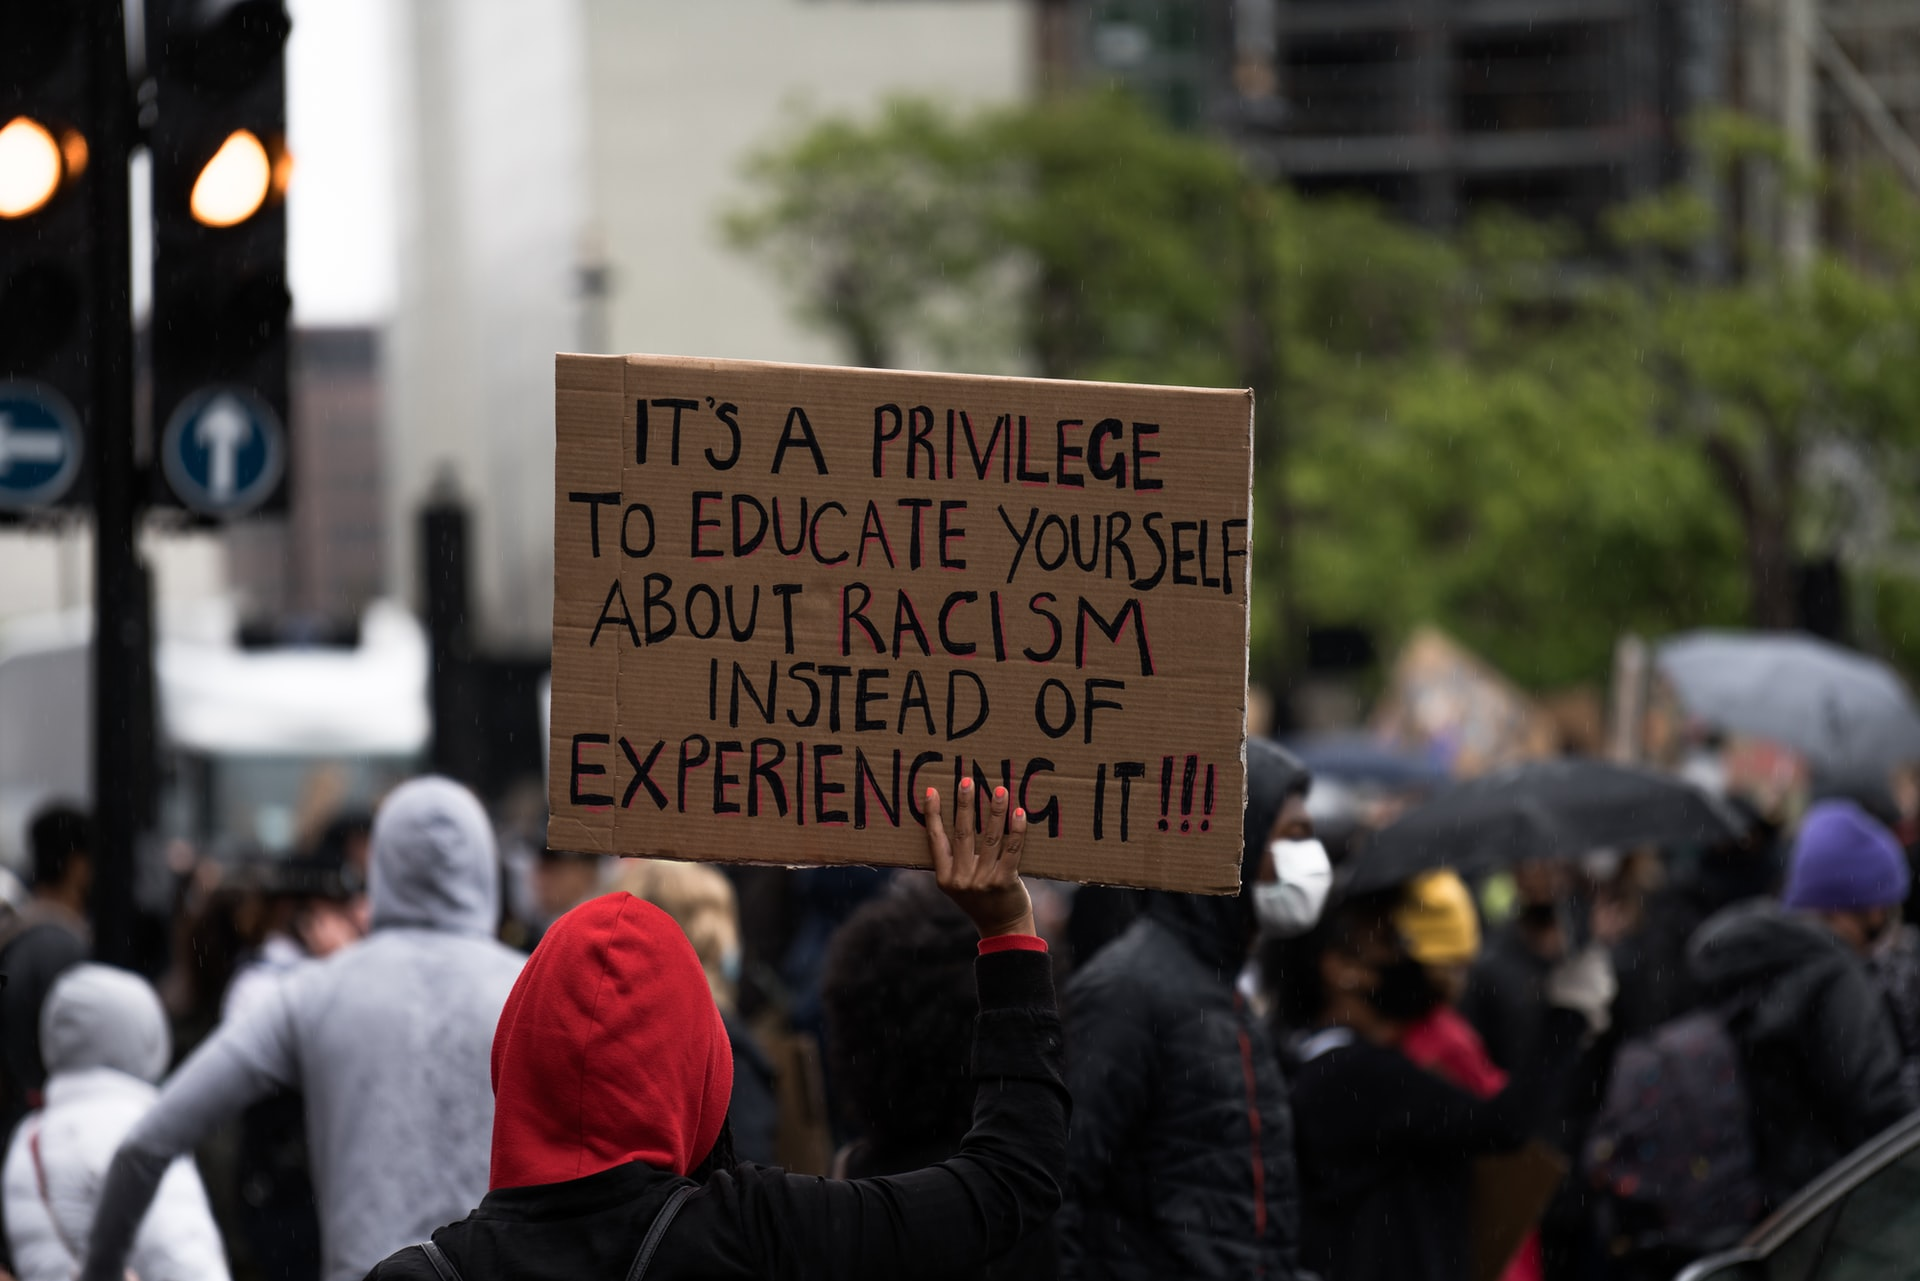 """Protester holds sign that reads """"It's a privilege to educate yourself about racism instead of experiencing it!!!"""""""